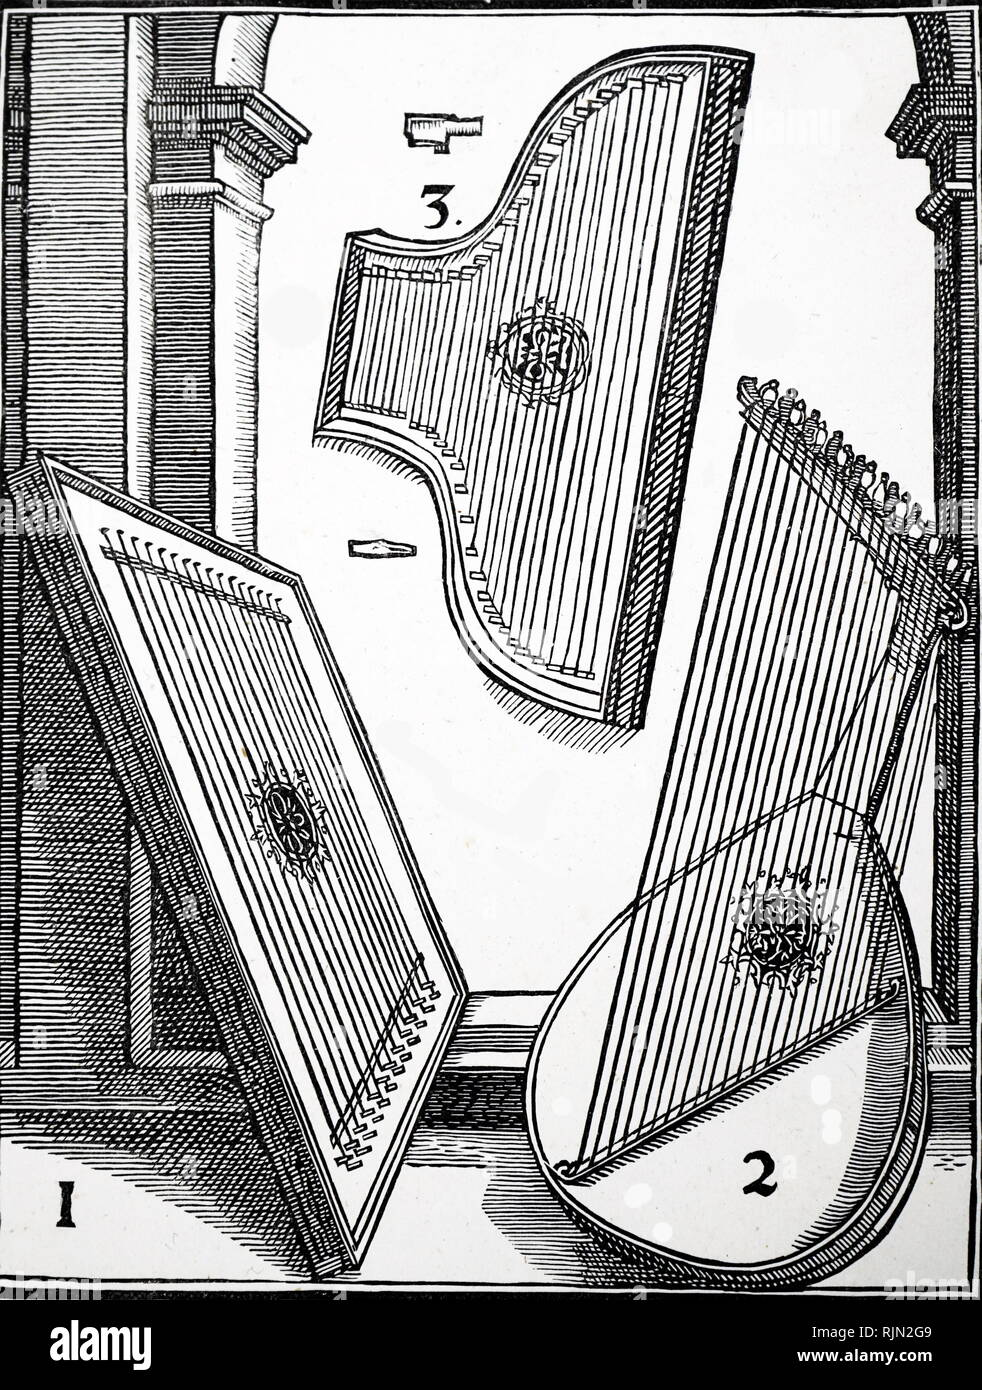 Illustration showing Stringed instruments of the 15th and 16th century; Europe. - Stock Image